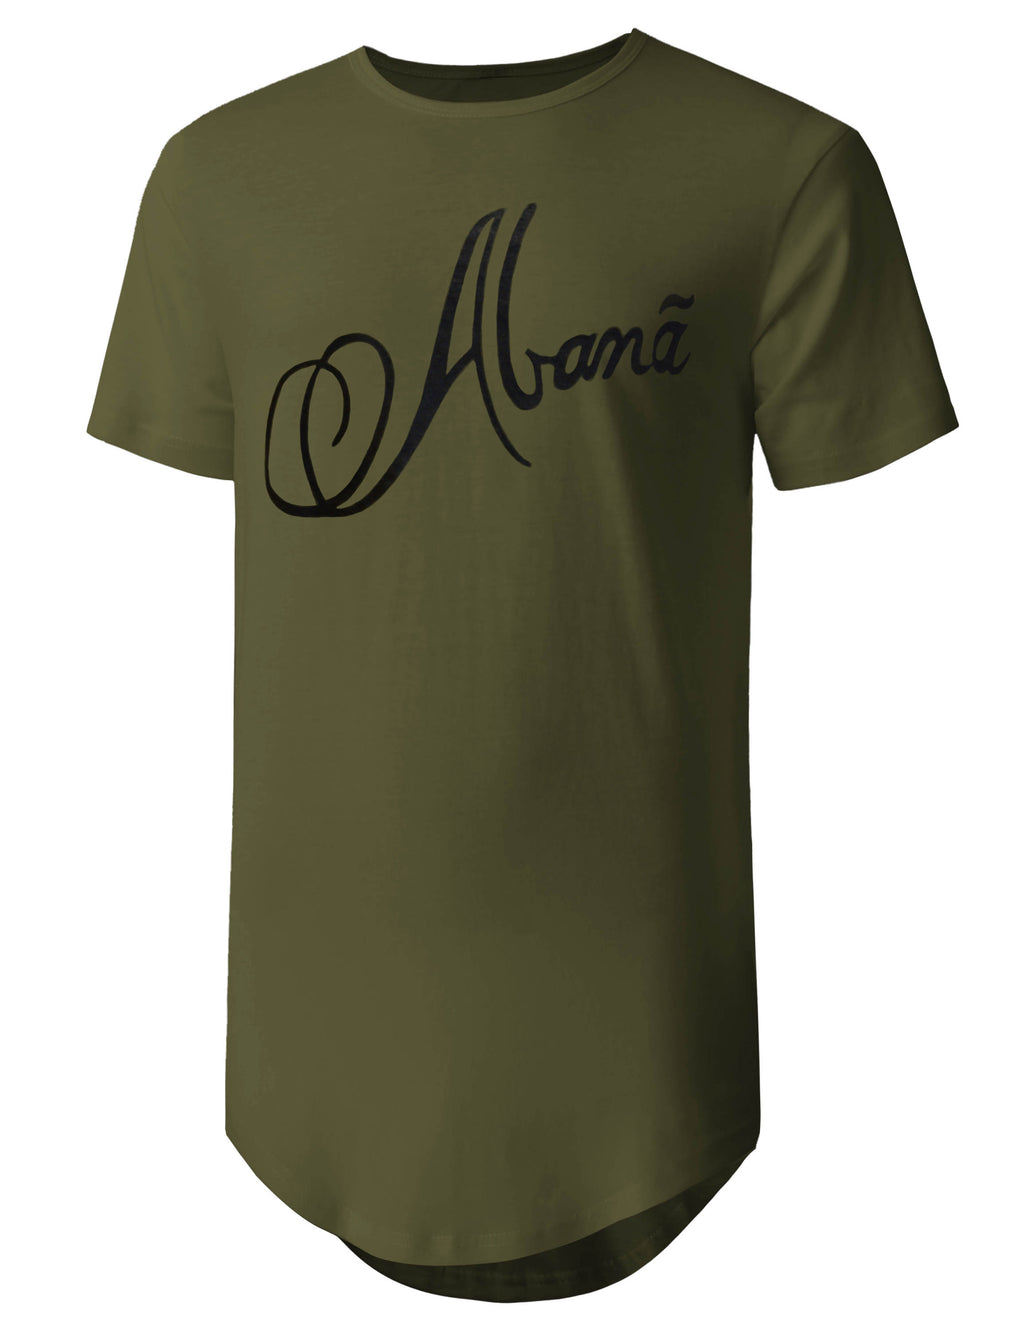 Abana Men Long Tees (CLICK TO VIEW OTHER COLORS)